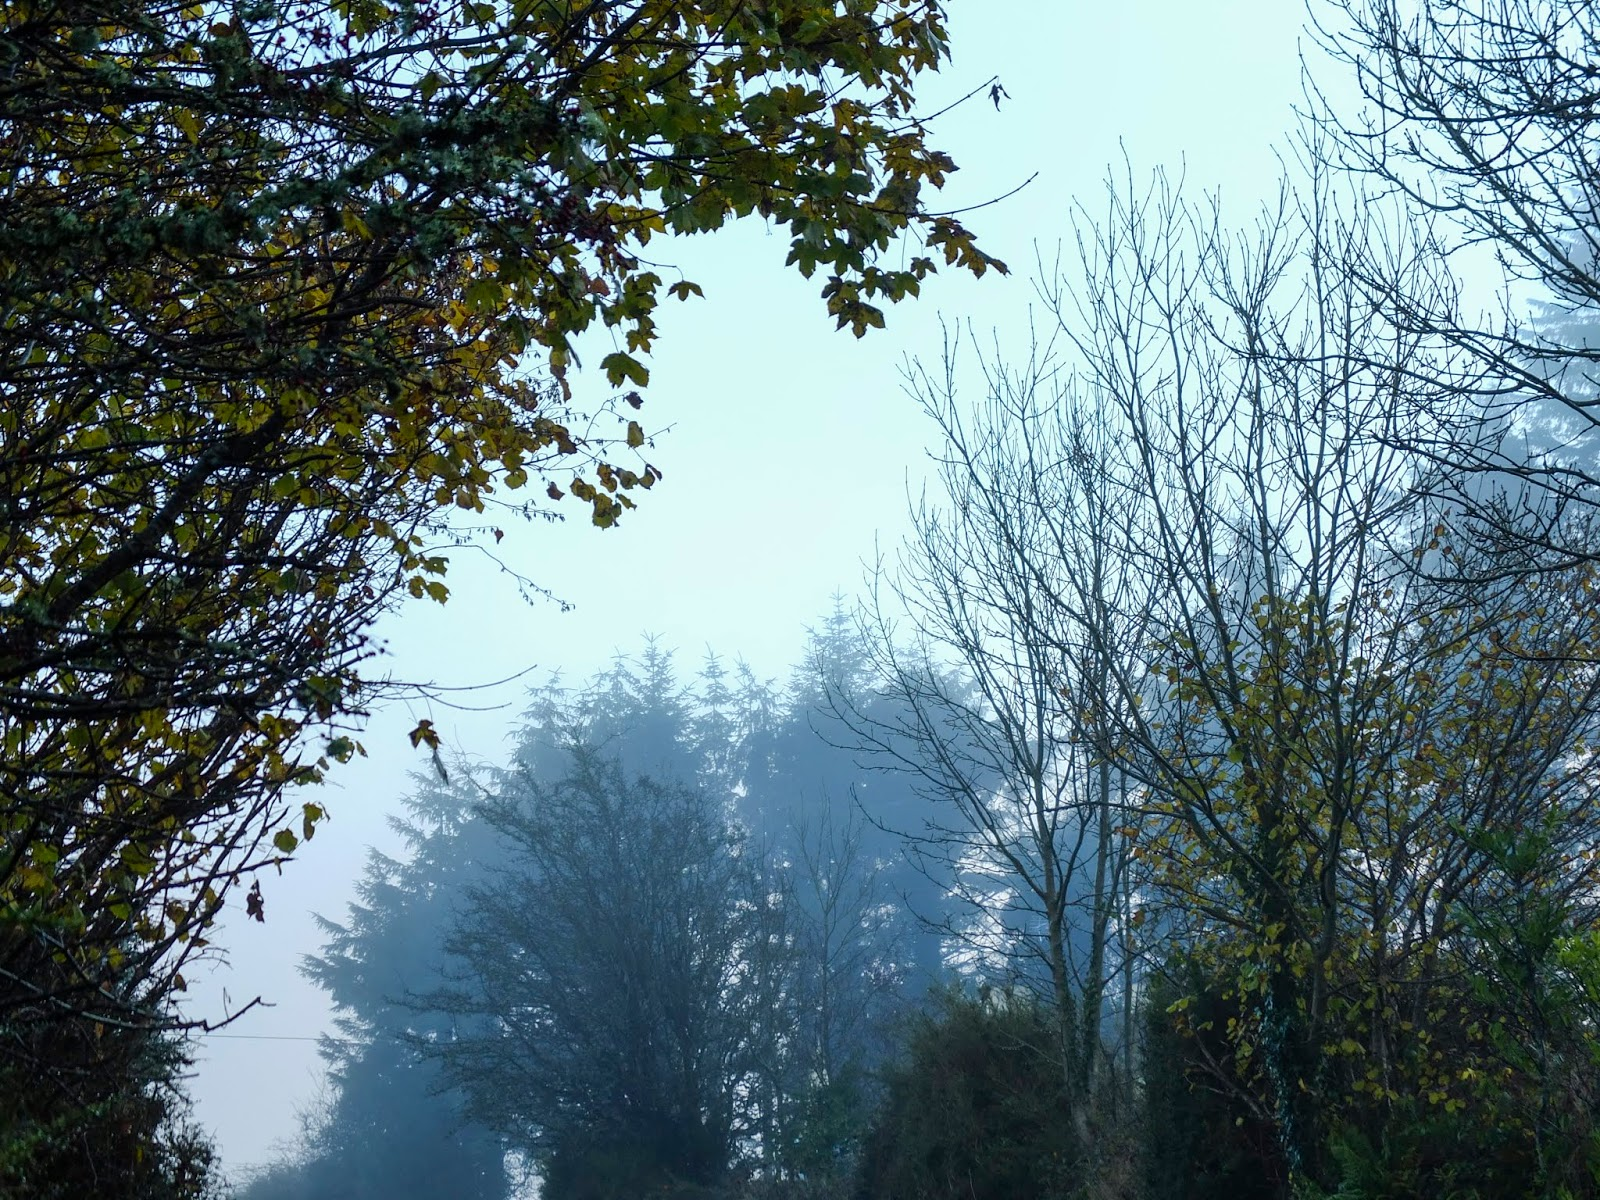 Trees on either side of a country road covered in morning mist.